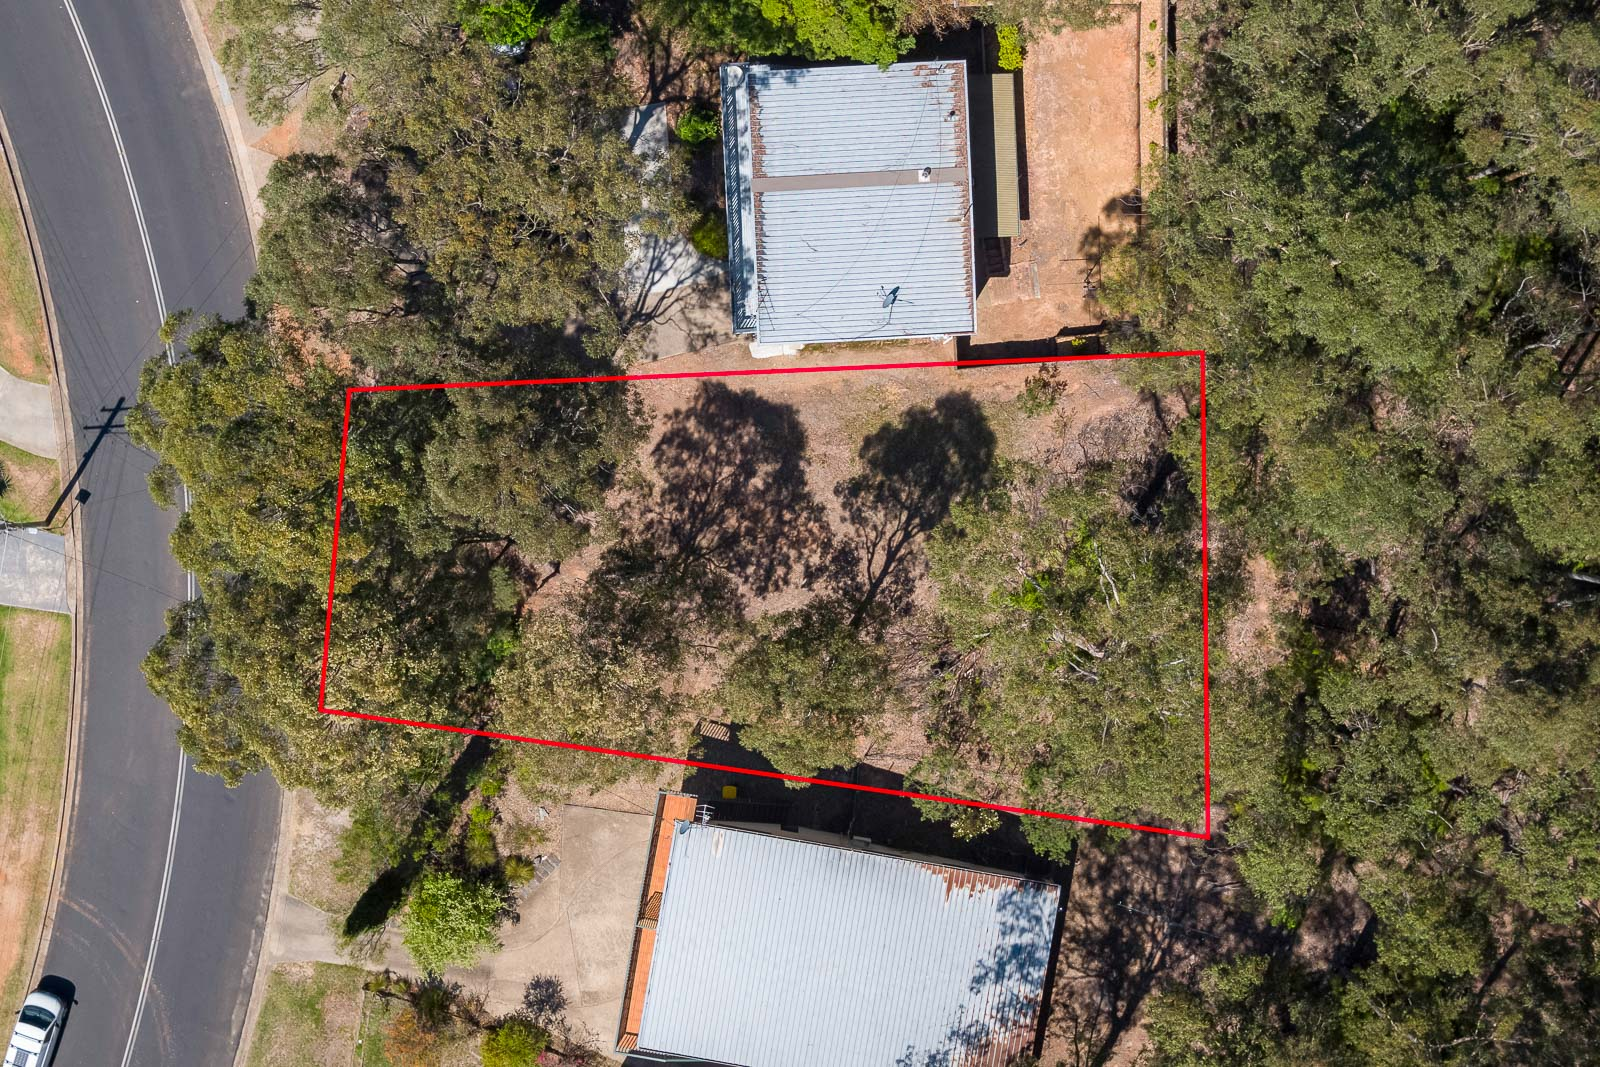 49 Country Club Drive, Catalina NSW 2536 - Land for Sale